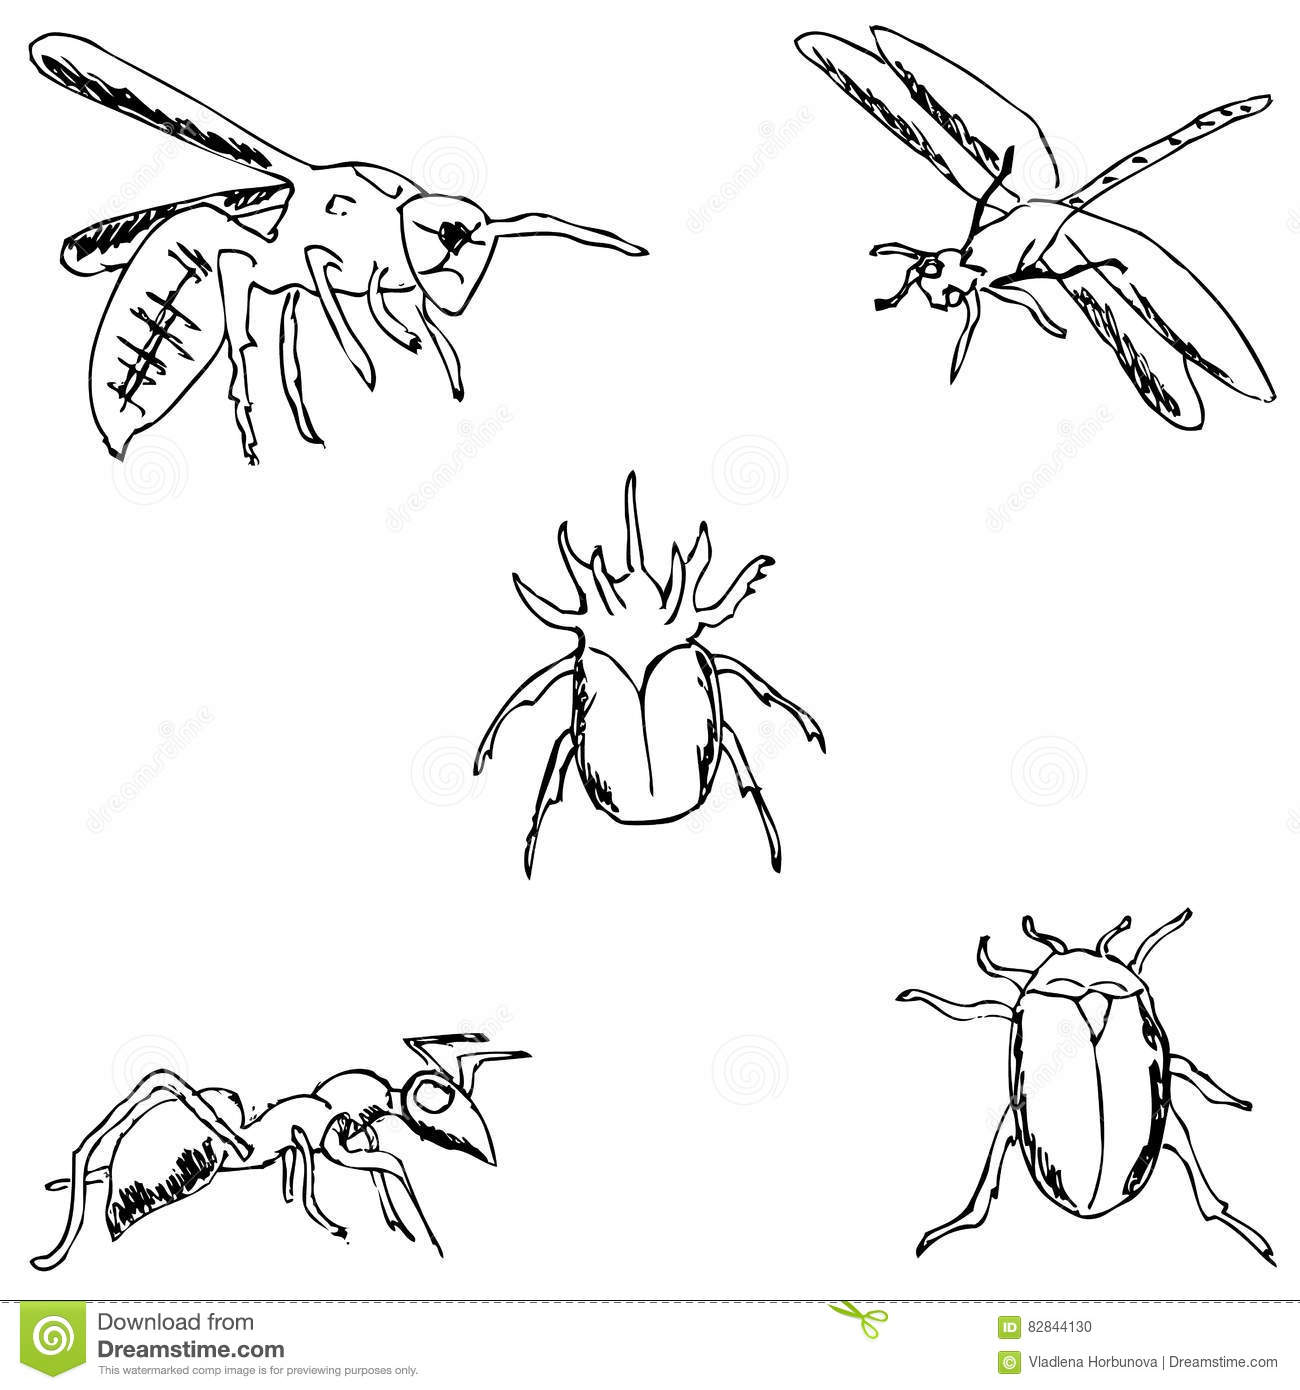 Insects a sketch by hand pencil drawing stock vector